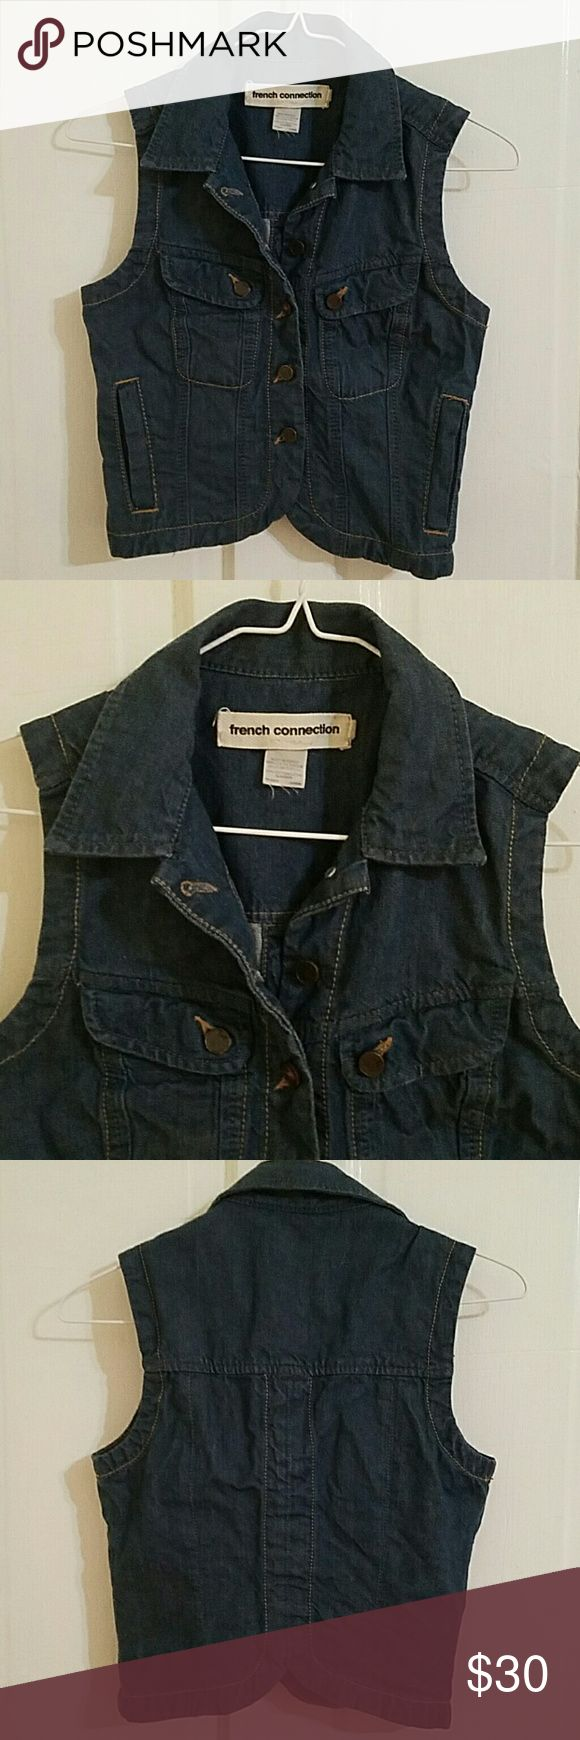 French Connection jean vest French Connection jean vest, tag says size 4 but this is a slim fit. French Connection Jackets & Coats Vests